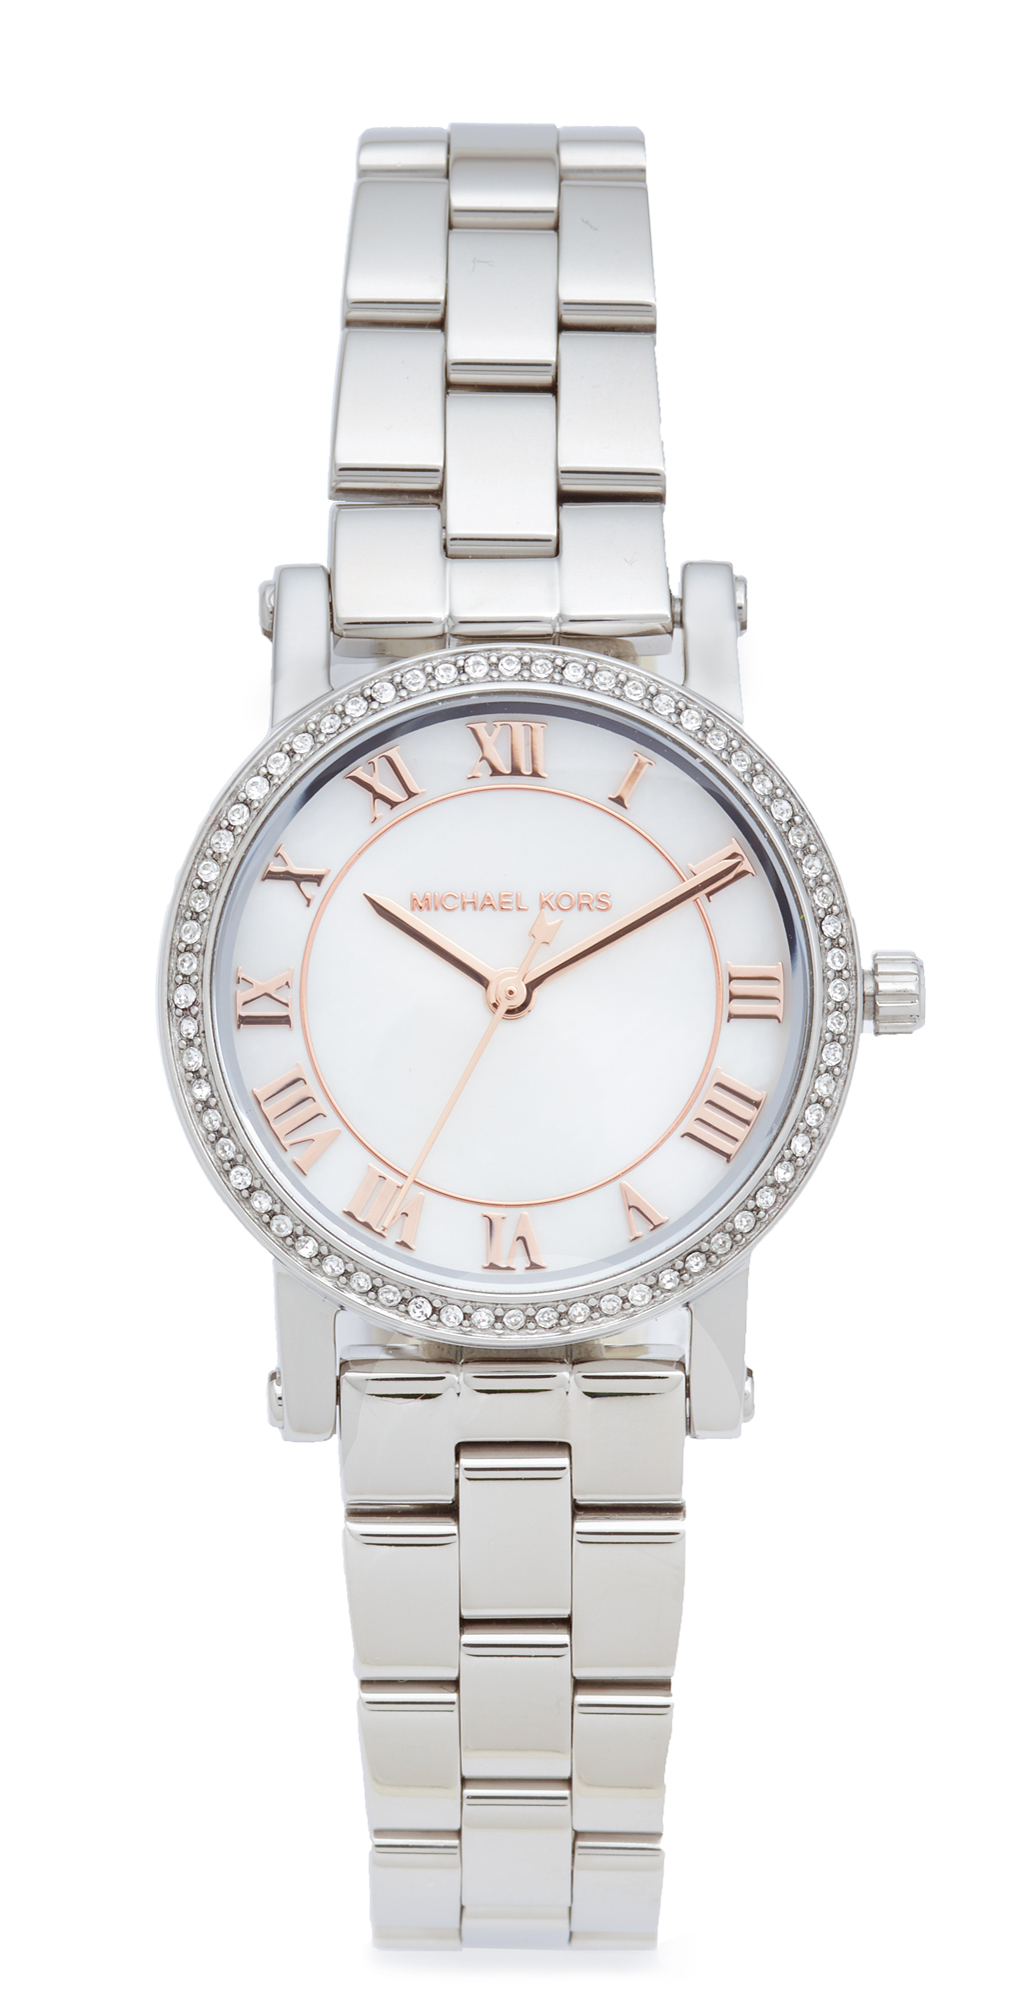 Petite Norie Watch Michael Kors